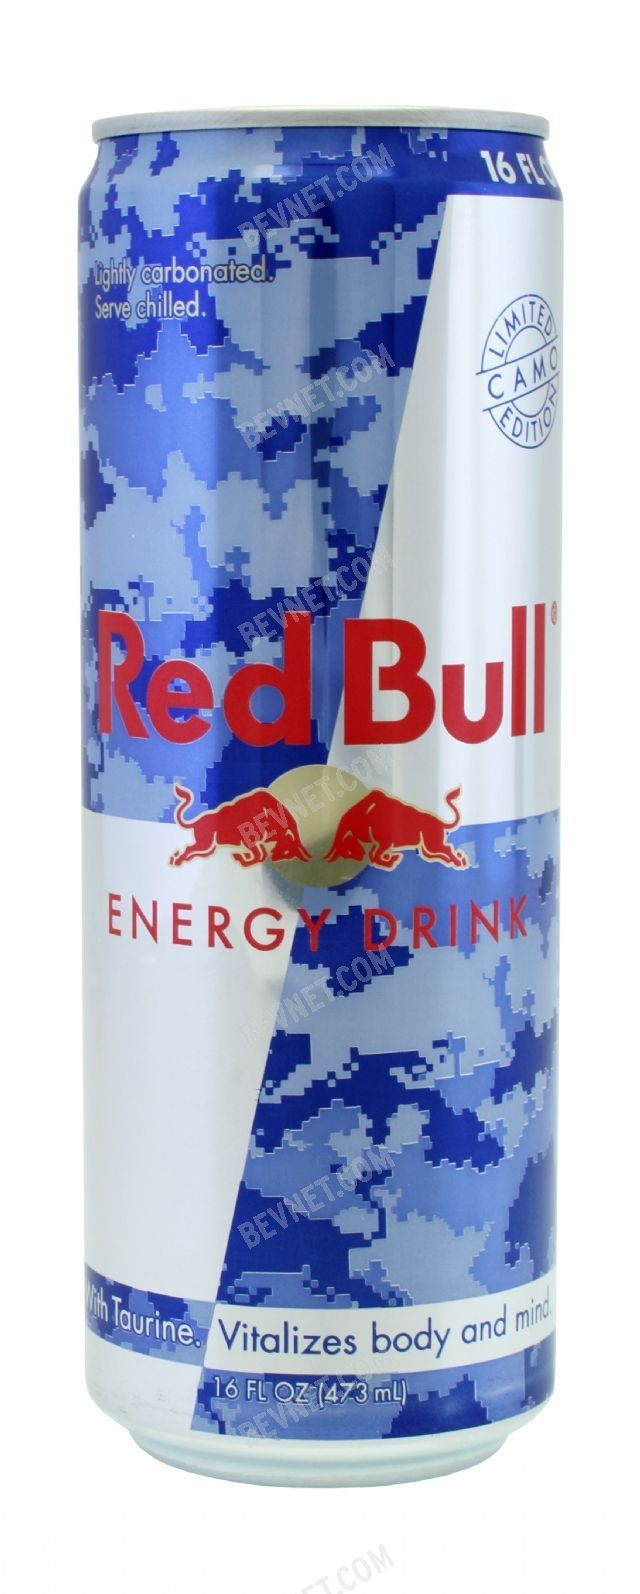 Red Bull Energy Drink: